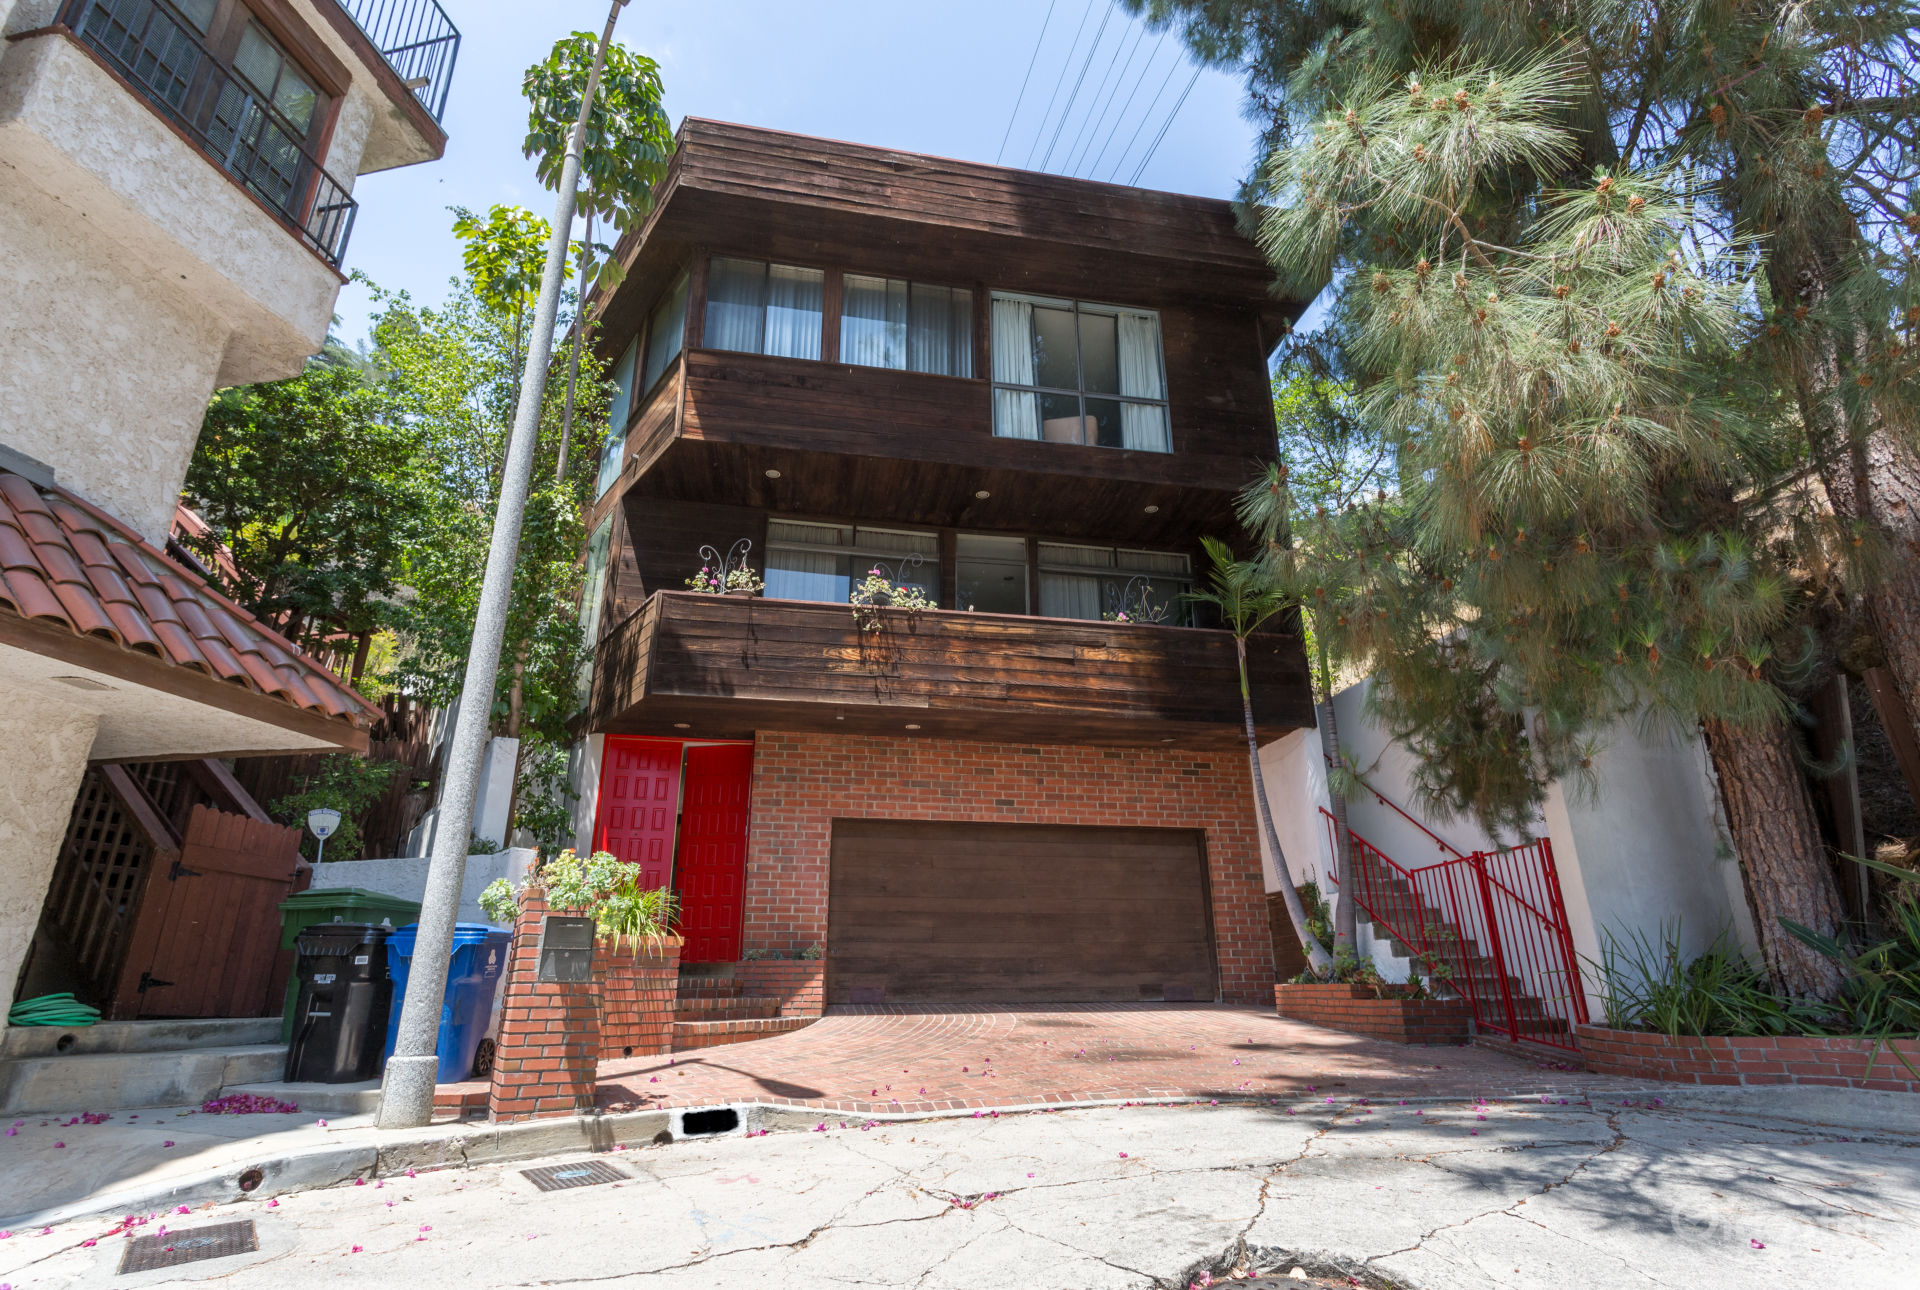 Retro Home with Elevator in Beverly Hills Los Angeles Rental